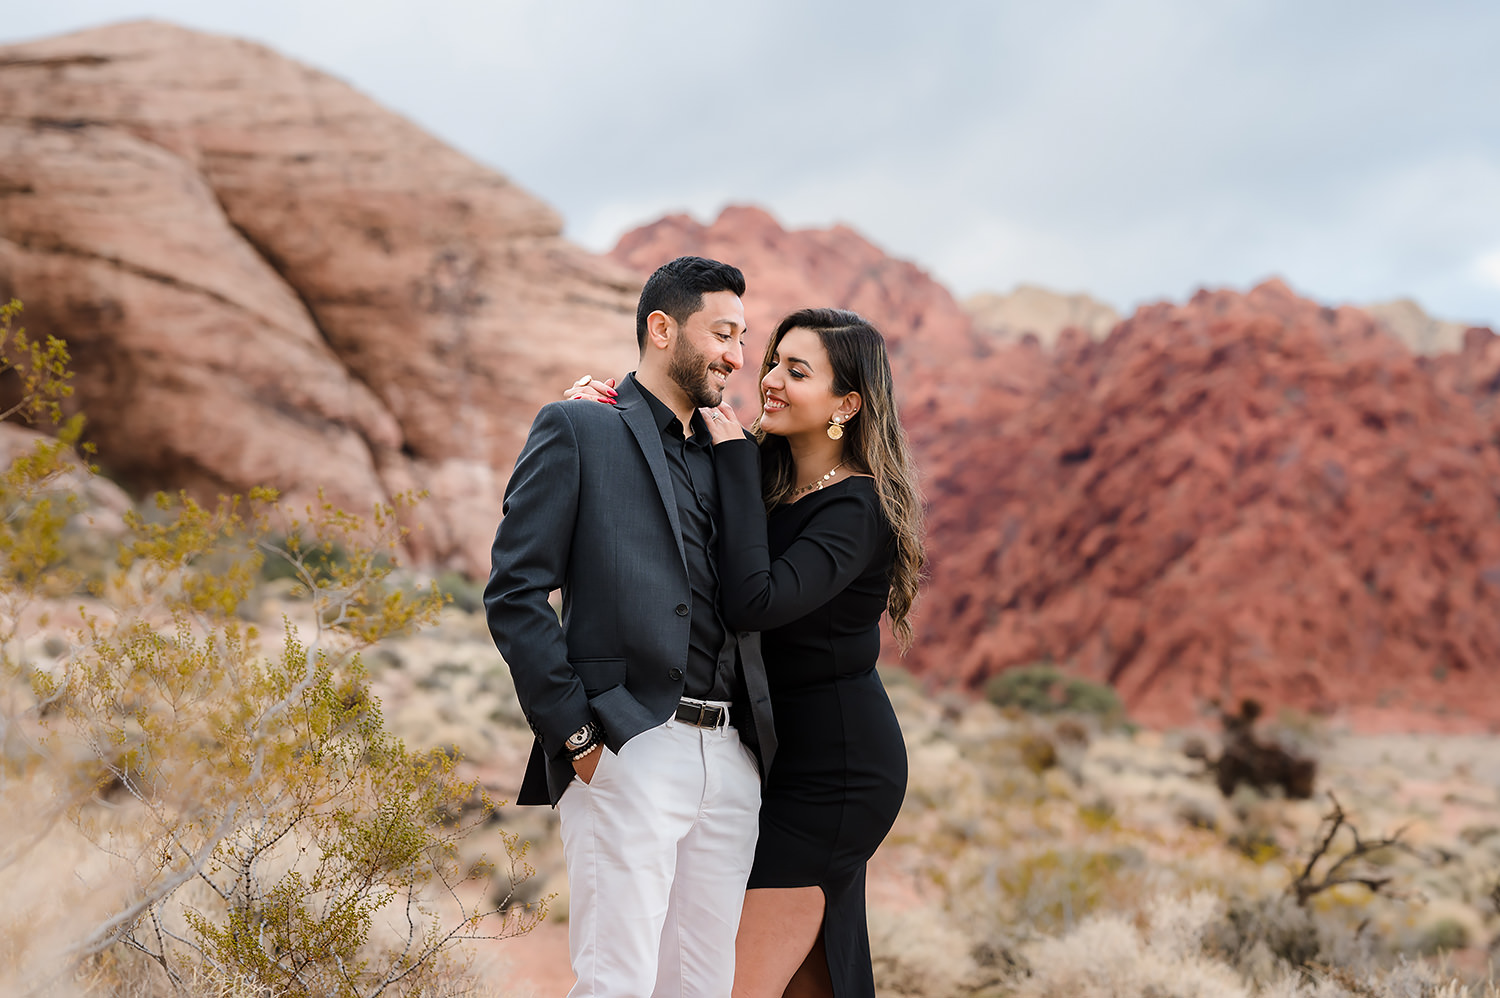 Las Vegas Nevada Engagement Session | Michael and Elaria